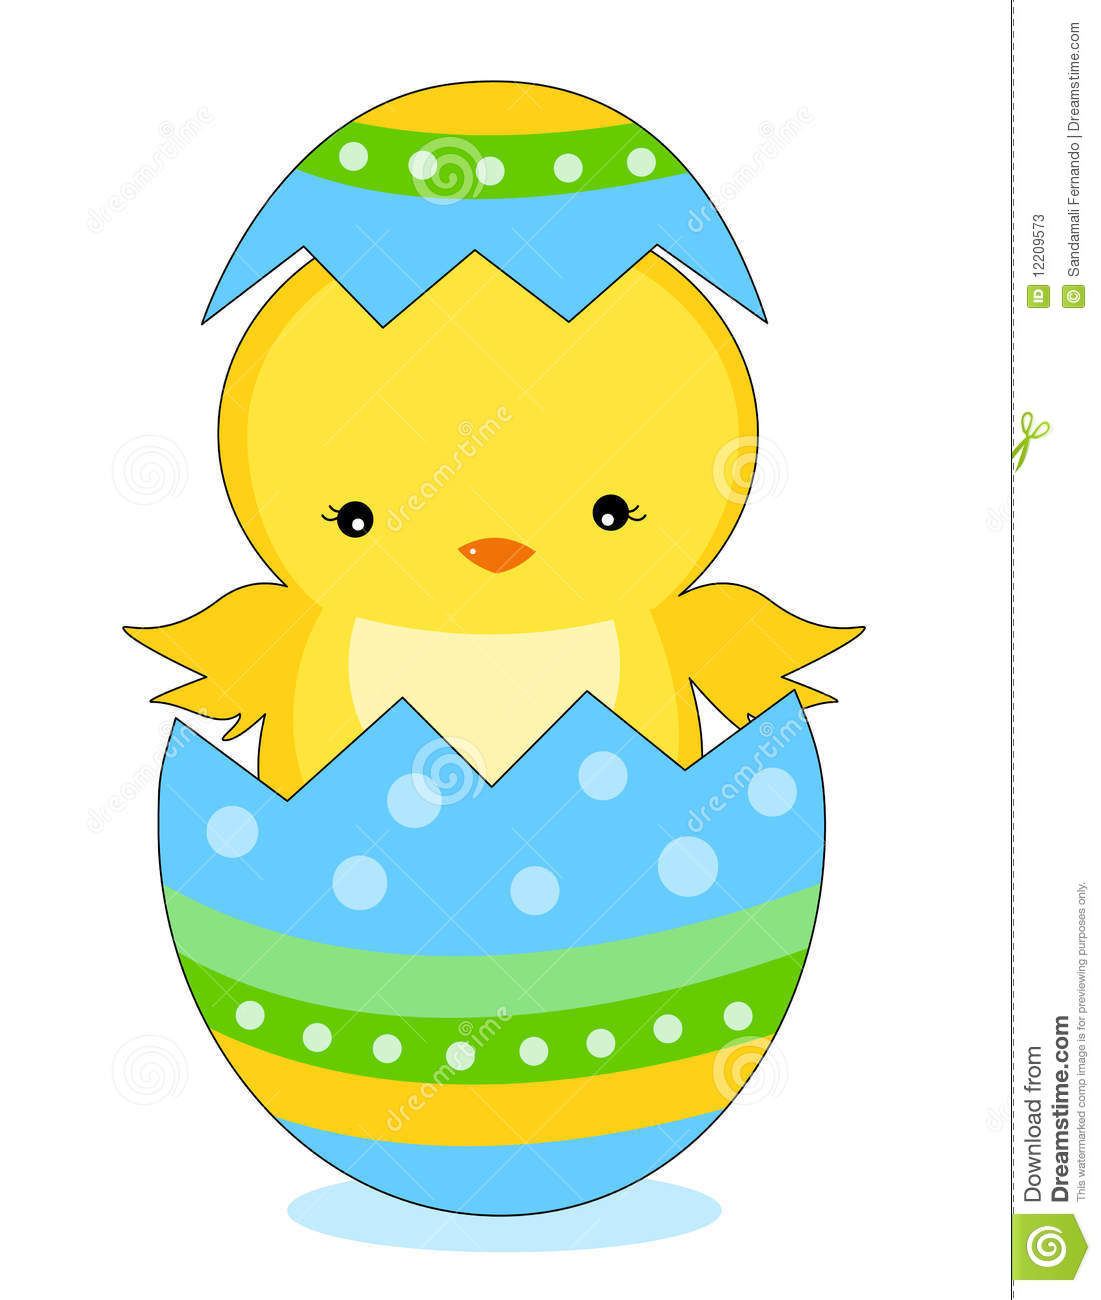 easter chick clipart at getdrawings com free for personal use rh getdrawings com  easter chick clipart black and white